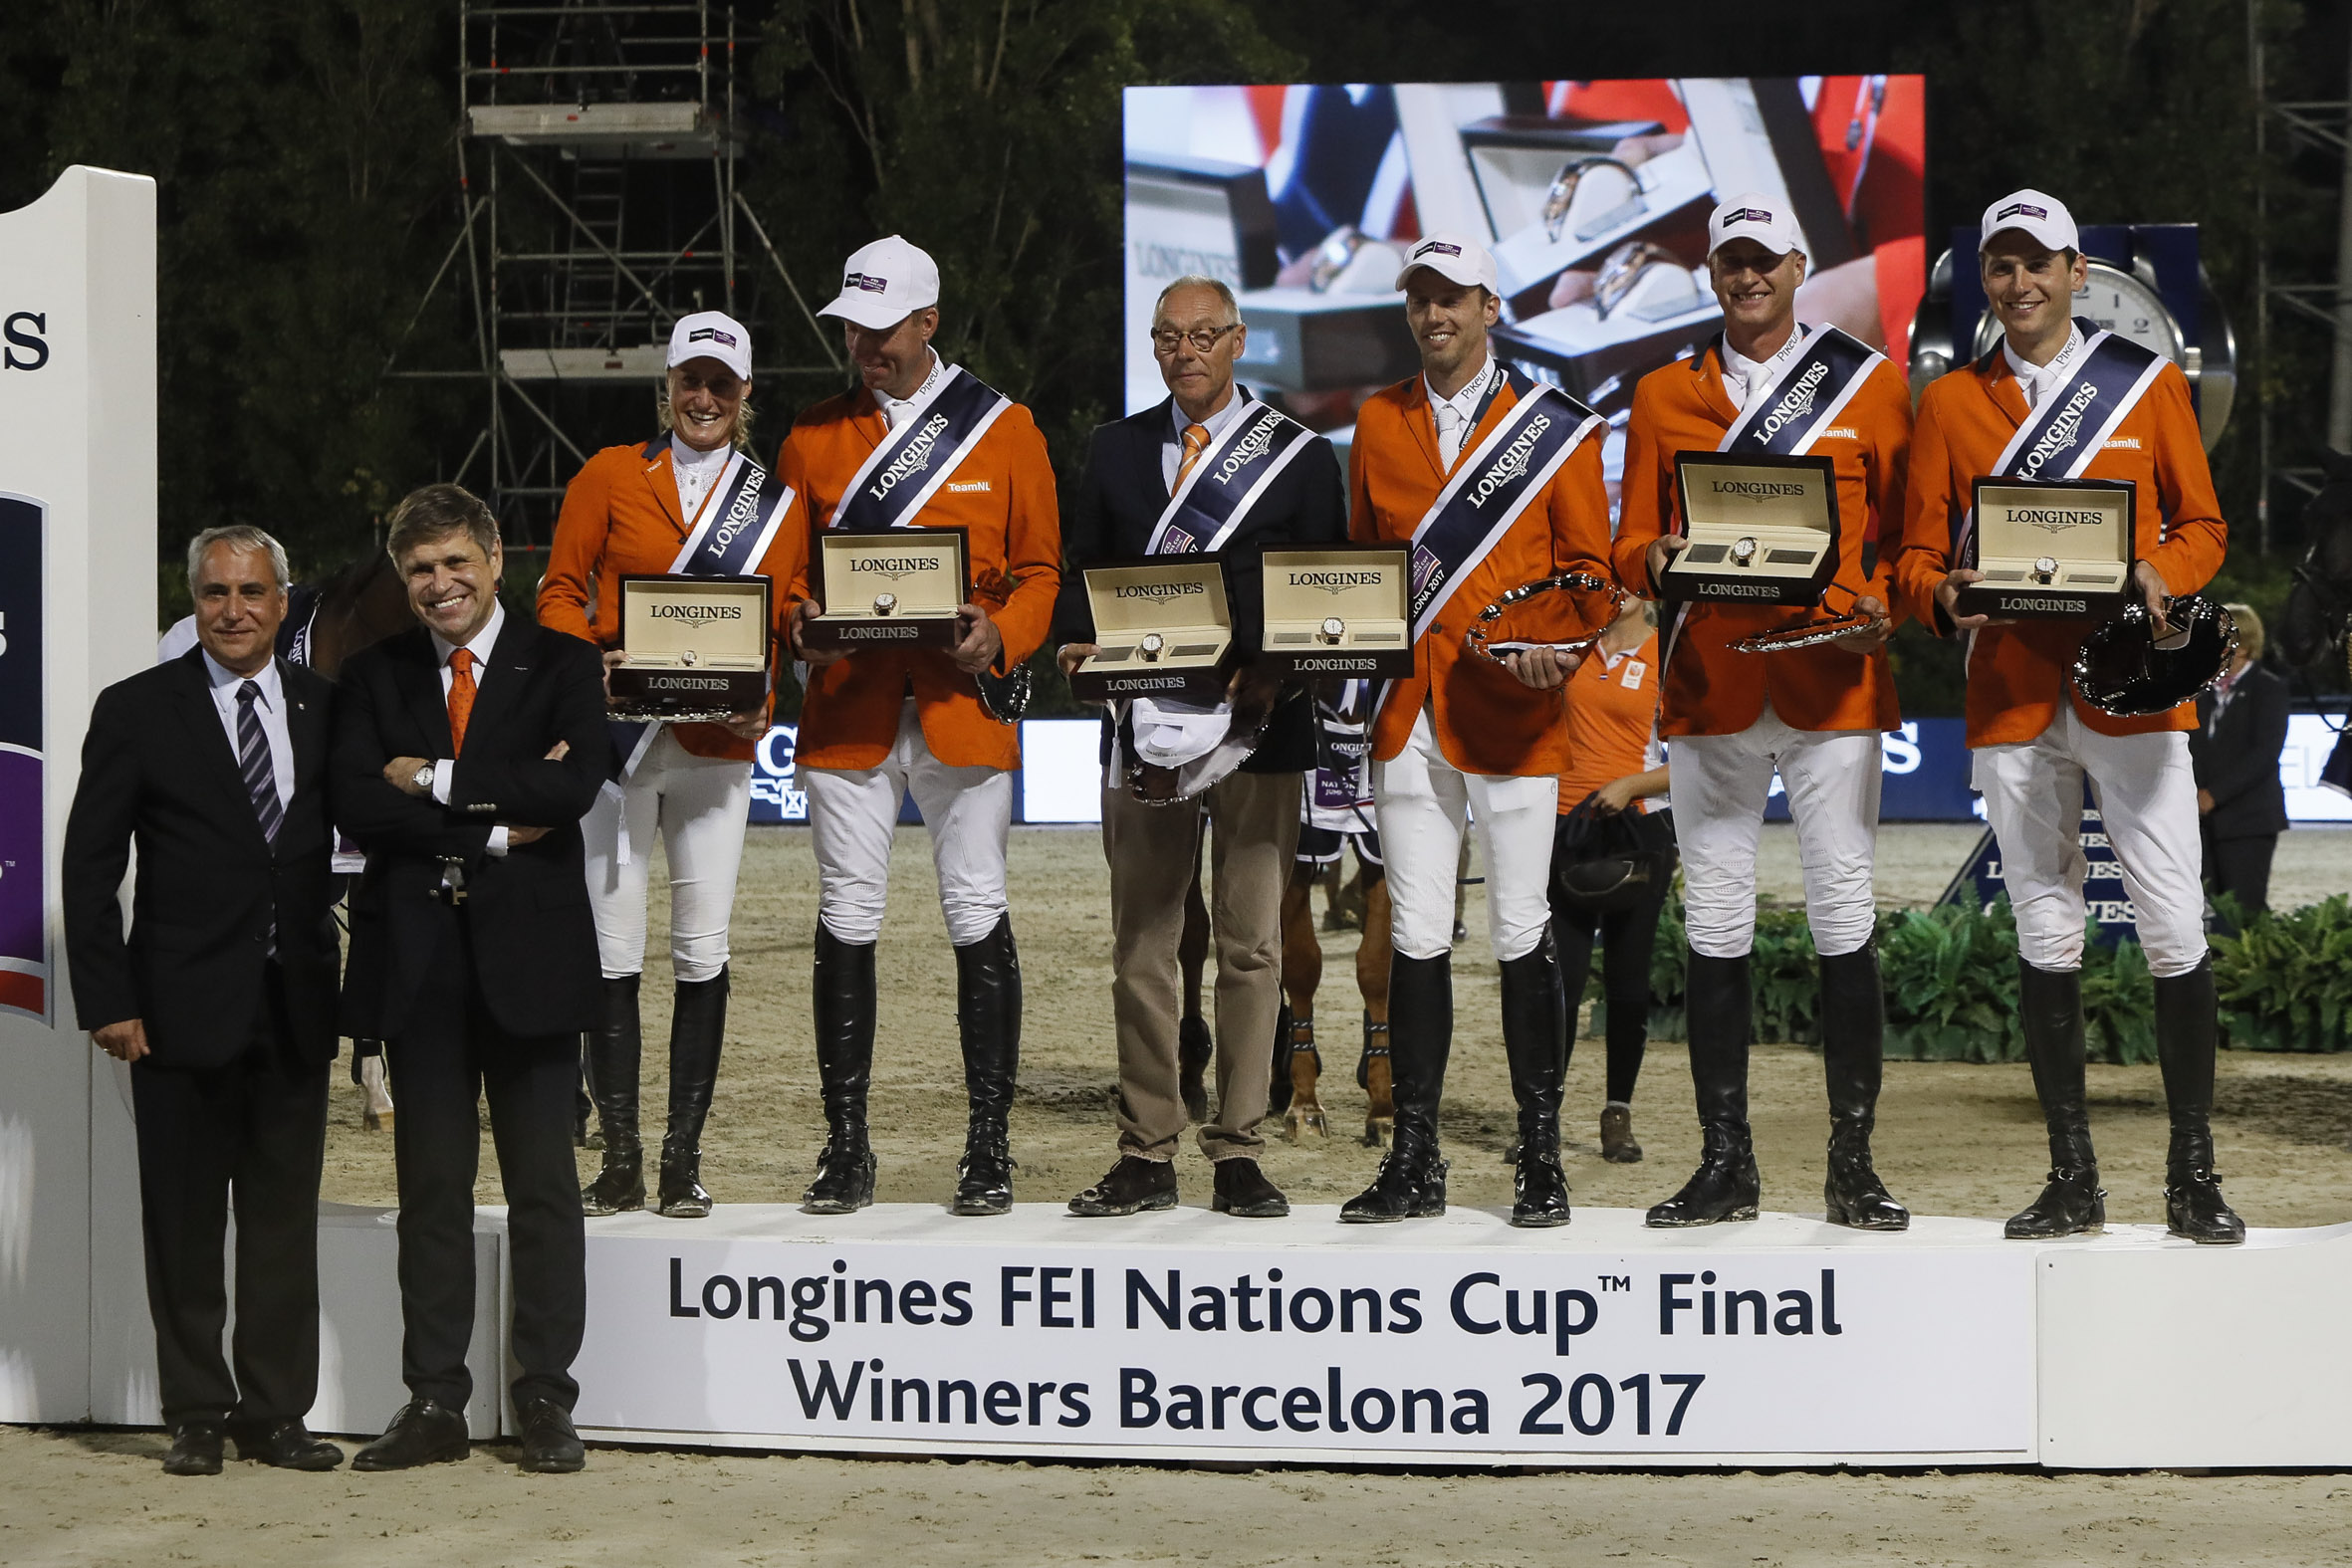 The Netherlands, Champions of the Longines FEI Nations Cup